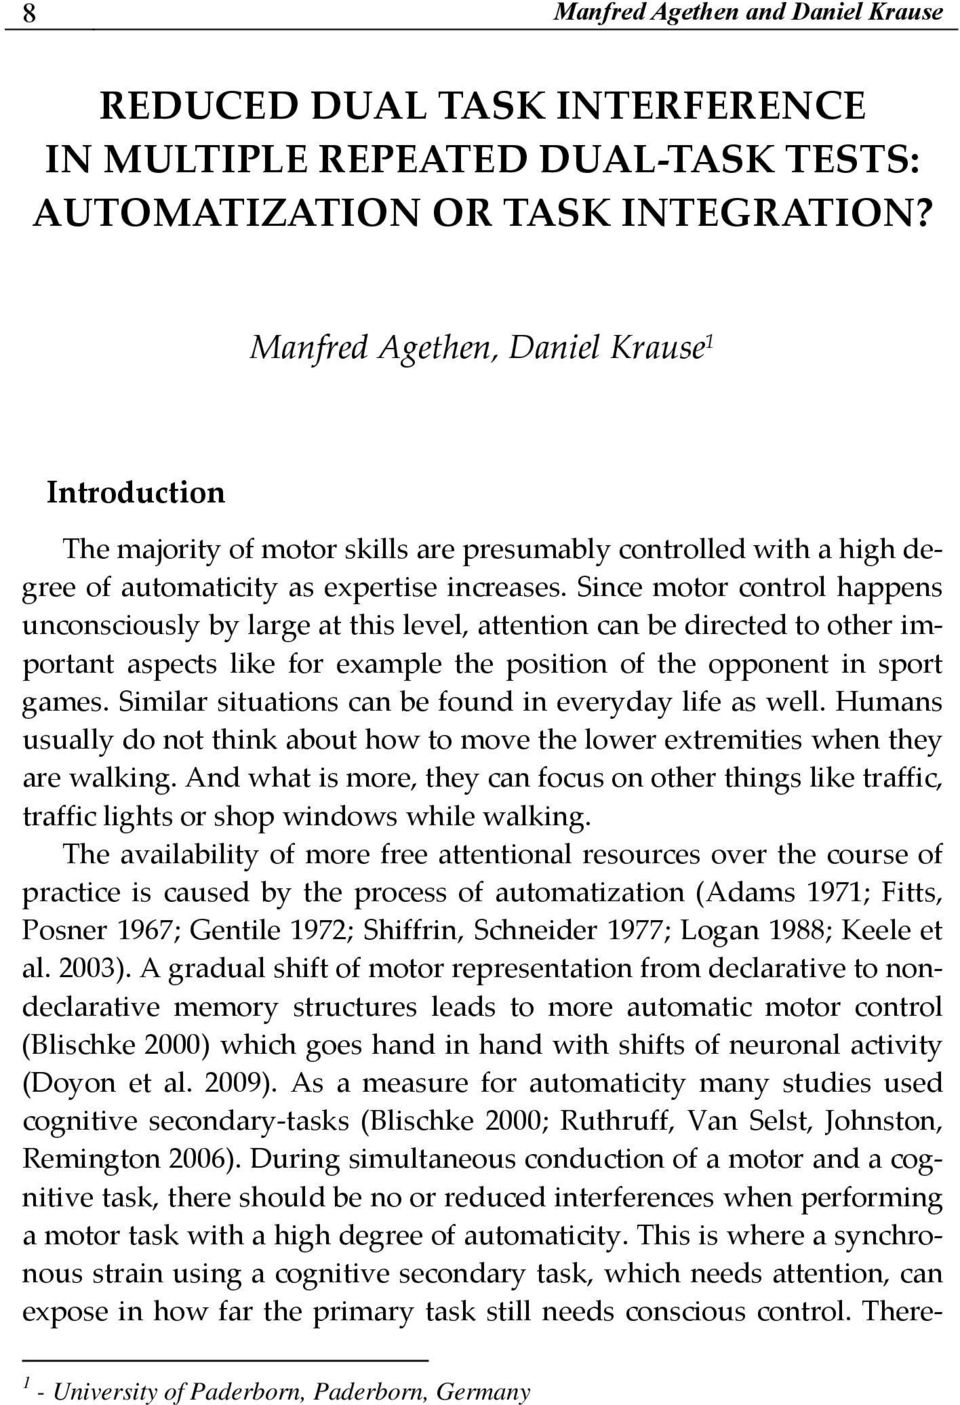 Since motor control happens unconsciously by large at this level, attention can be directed to other important aspects like for example the position of the opponent in sport games.